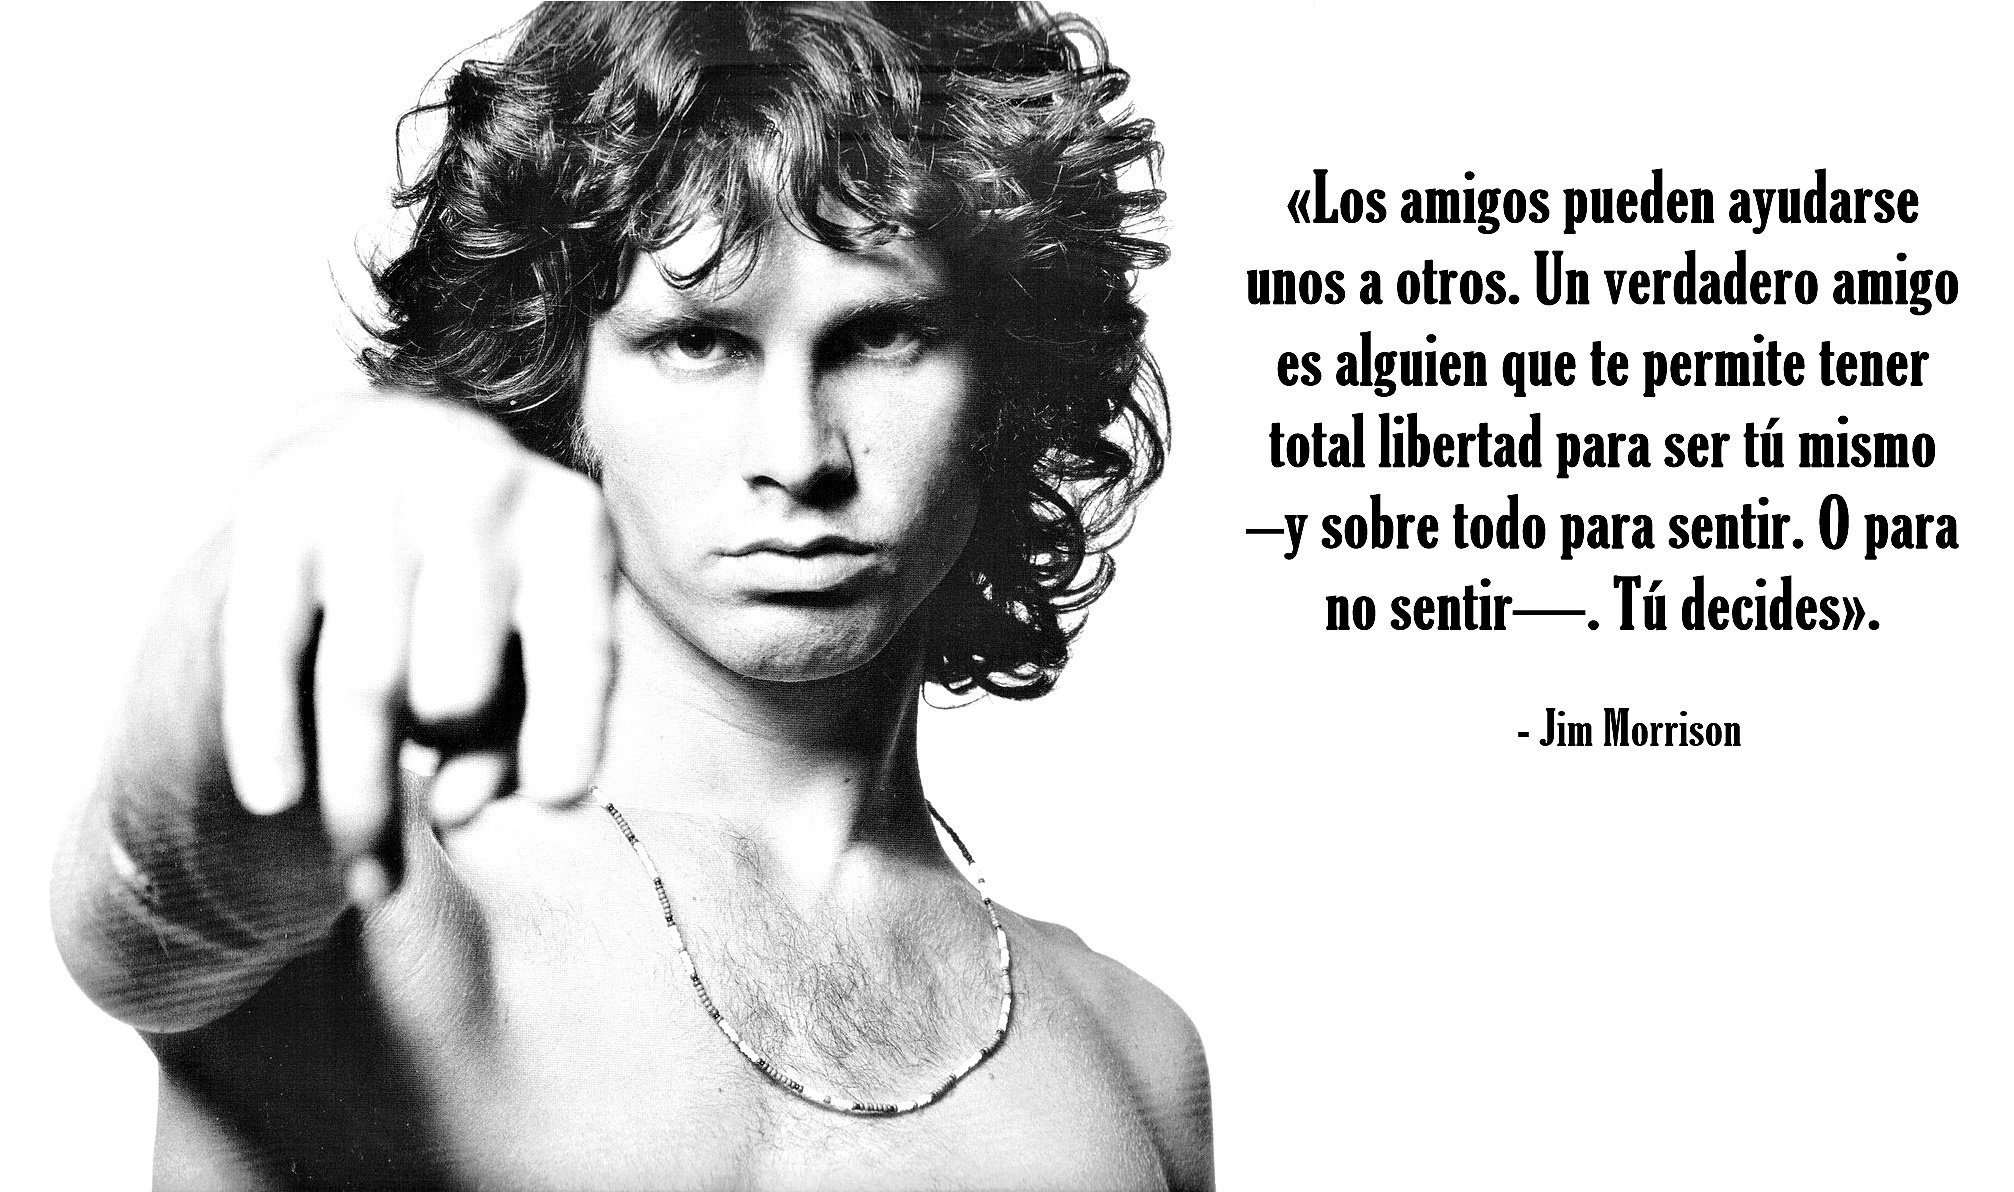 Jim Morrison, singer and poet, genius... https://t.co/U8rYgphhHG